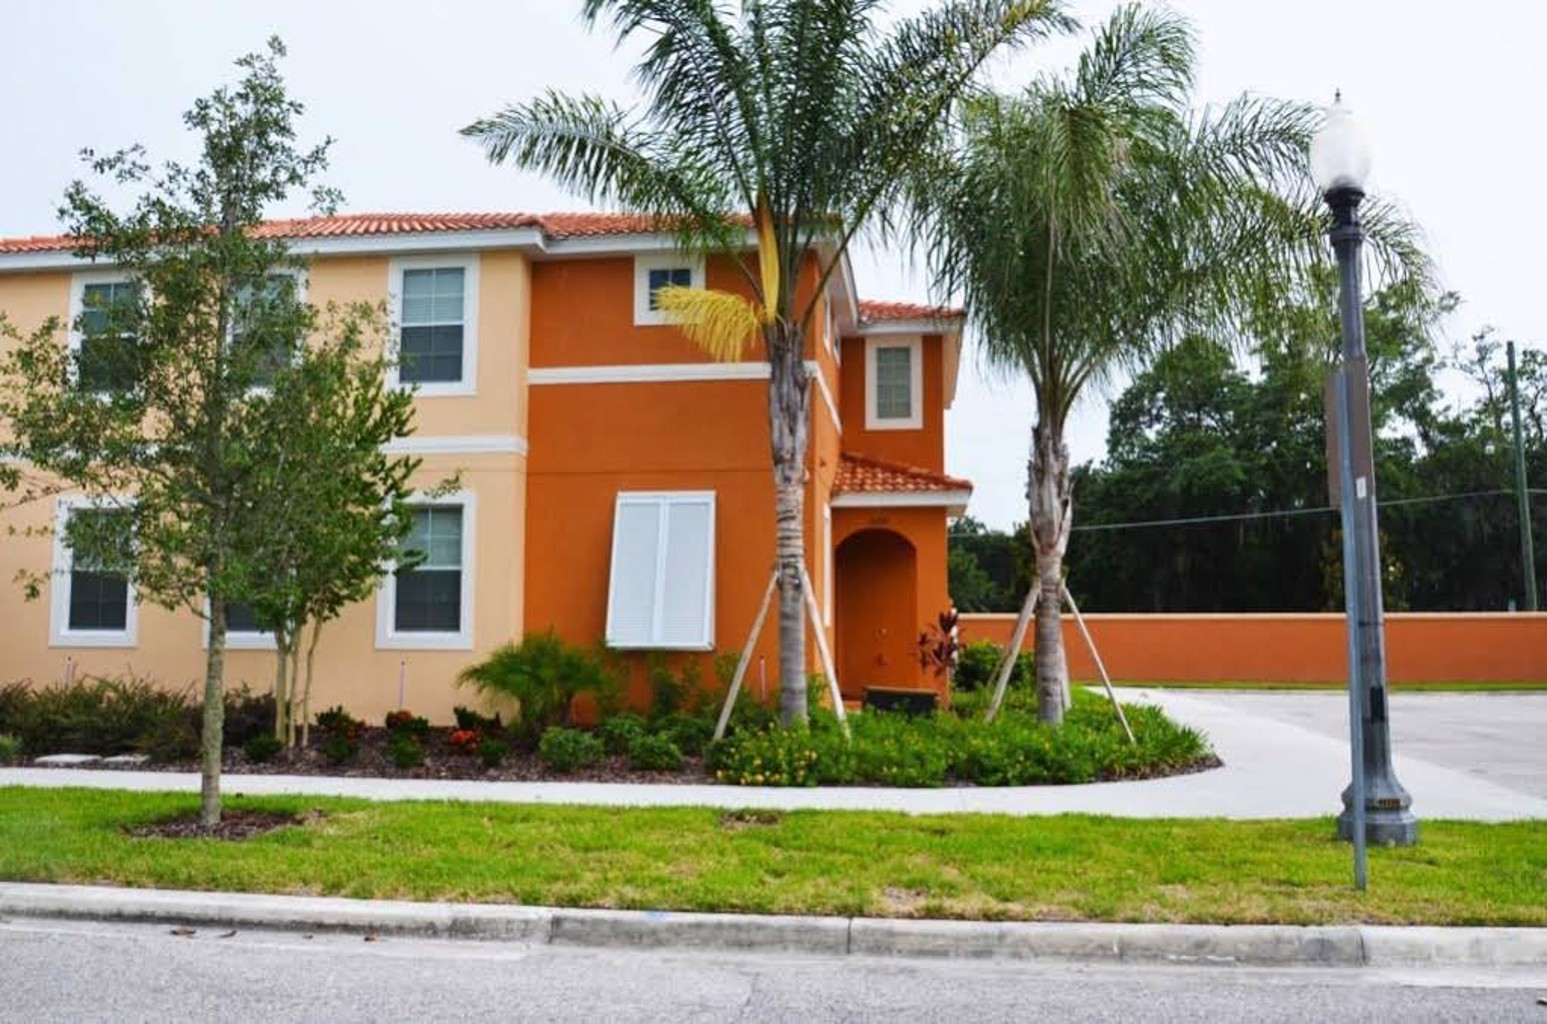 Bella Vida Resort 4 Bedroom Townhome With Private Pool 24 Hour Security Fid 4025